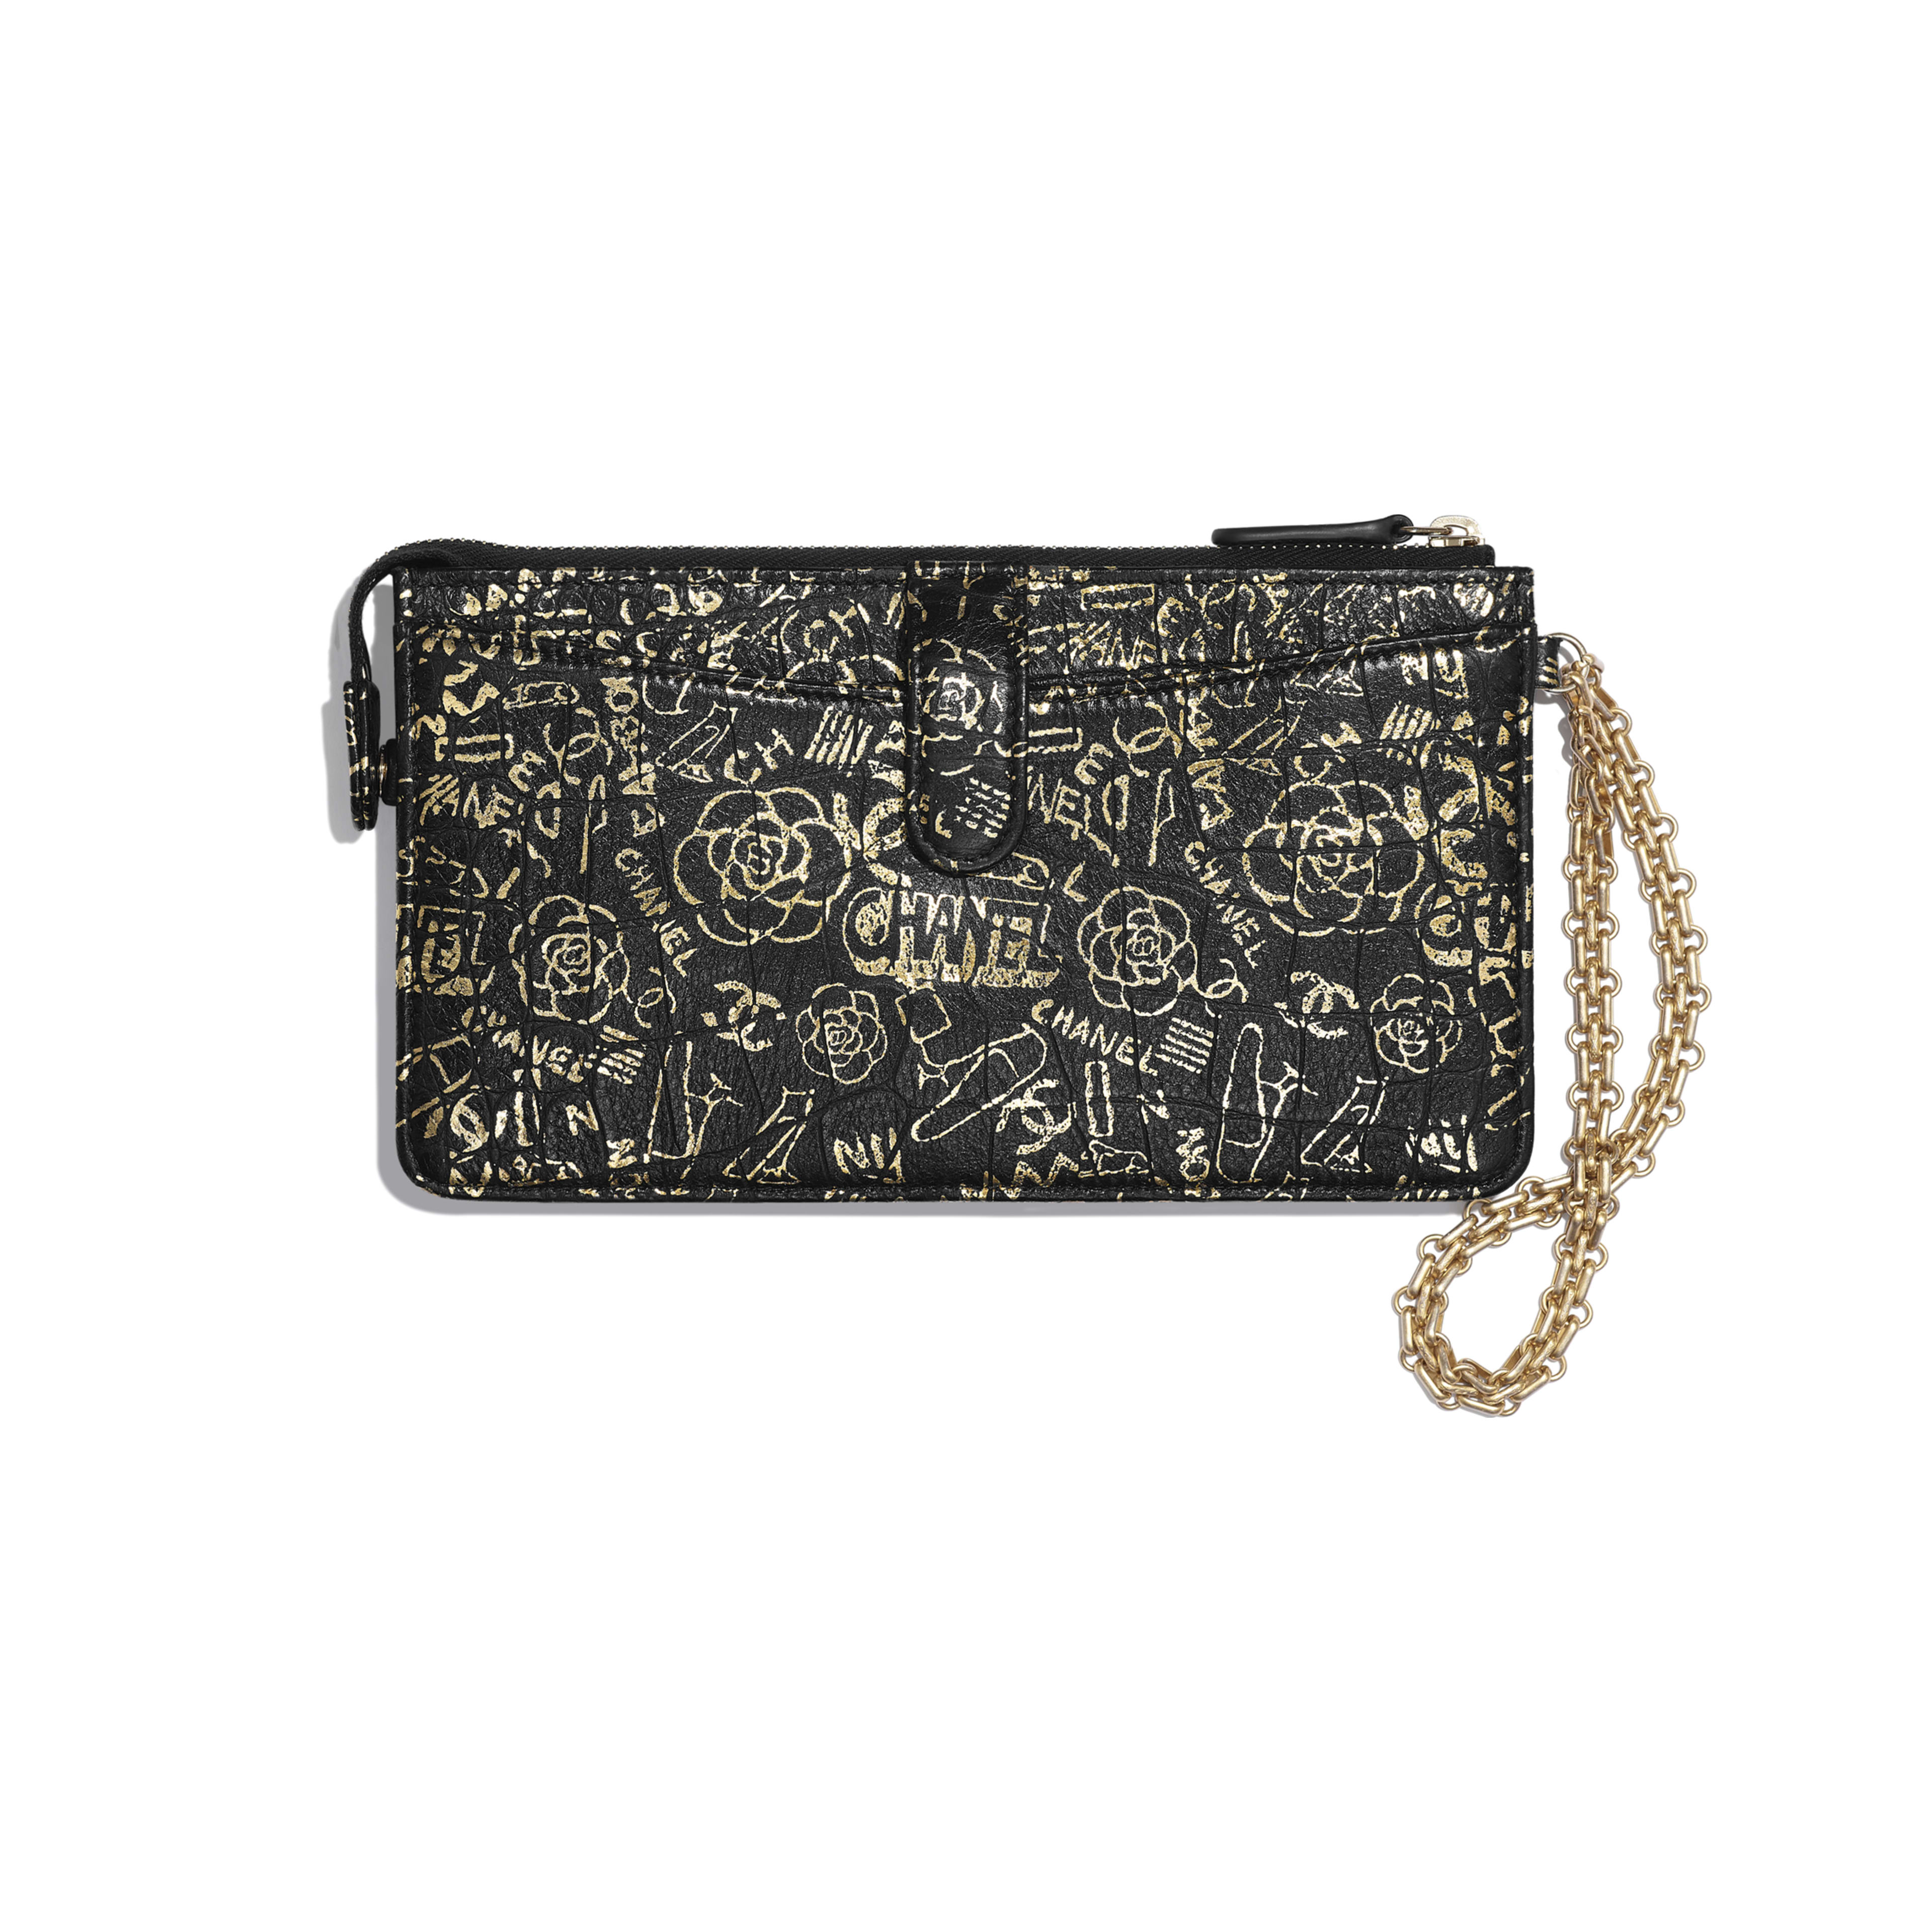 2.55 Pouch With Handle - Black & Gold - Crocodile Embossed Printed Leather & Gold-Tone Metal - Alternative view - see full sized version